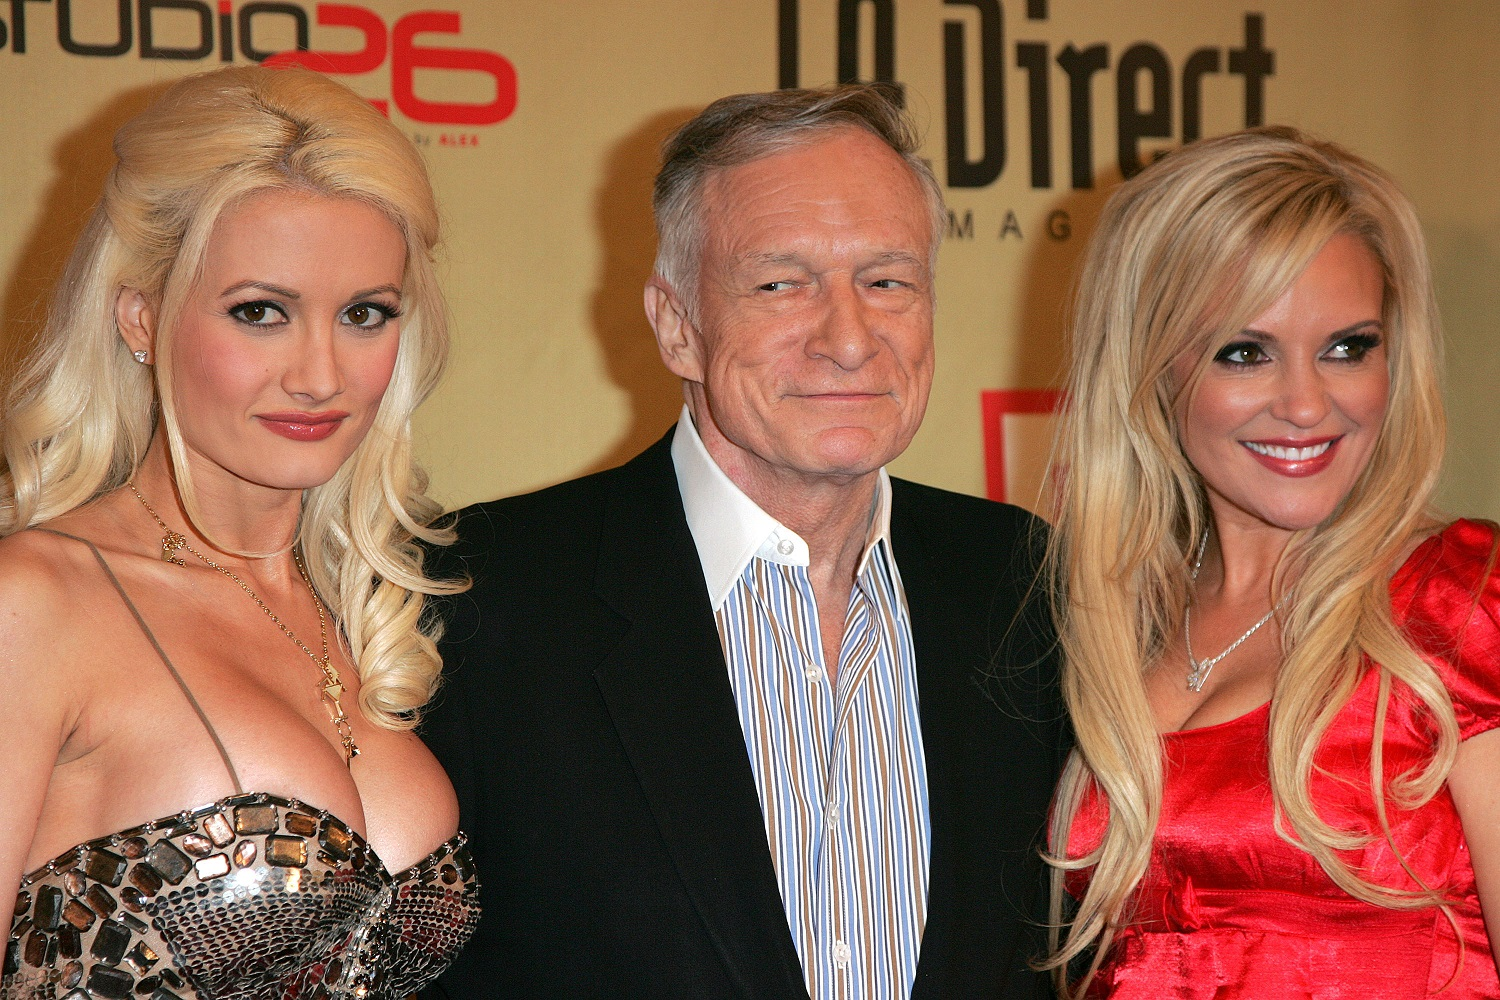 Holly Madison, Hugh Hefner, and Bridget Marquardt